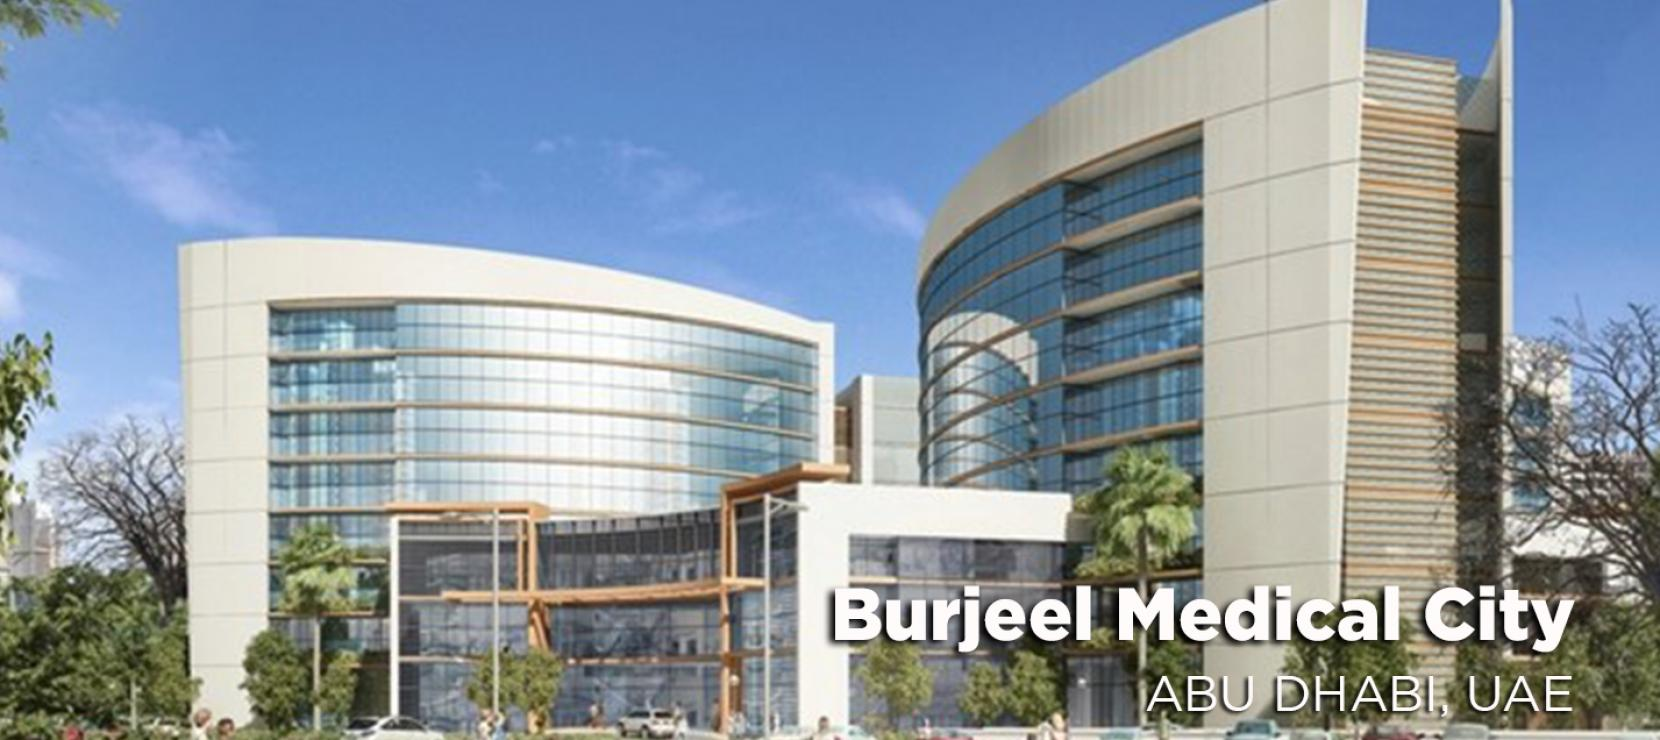 Burjeel Medical City